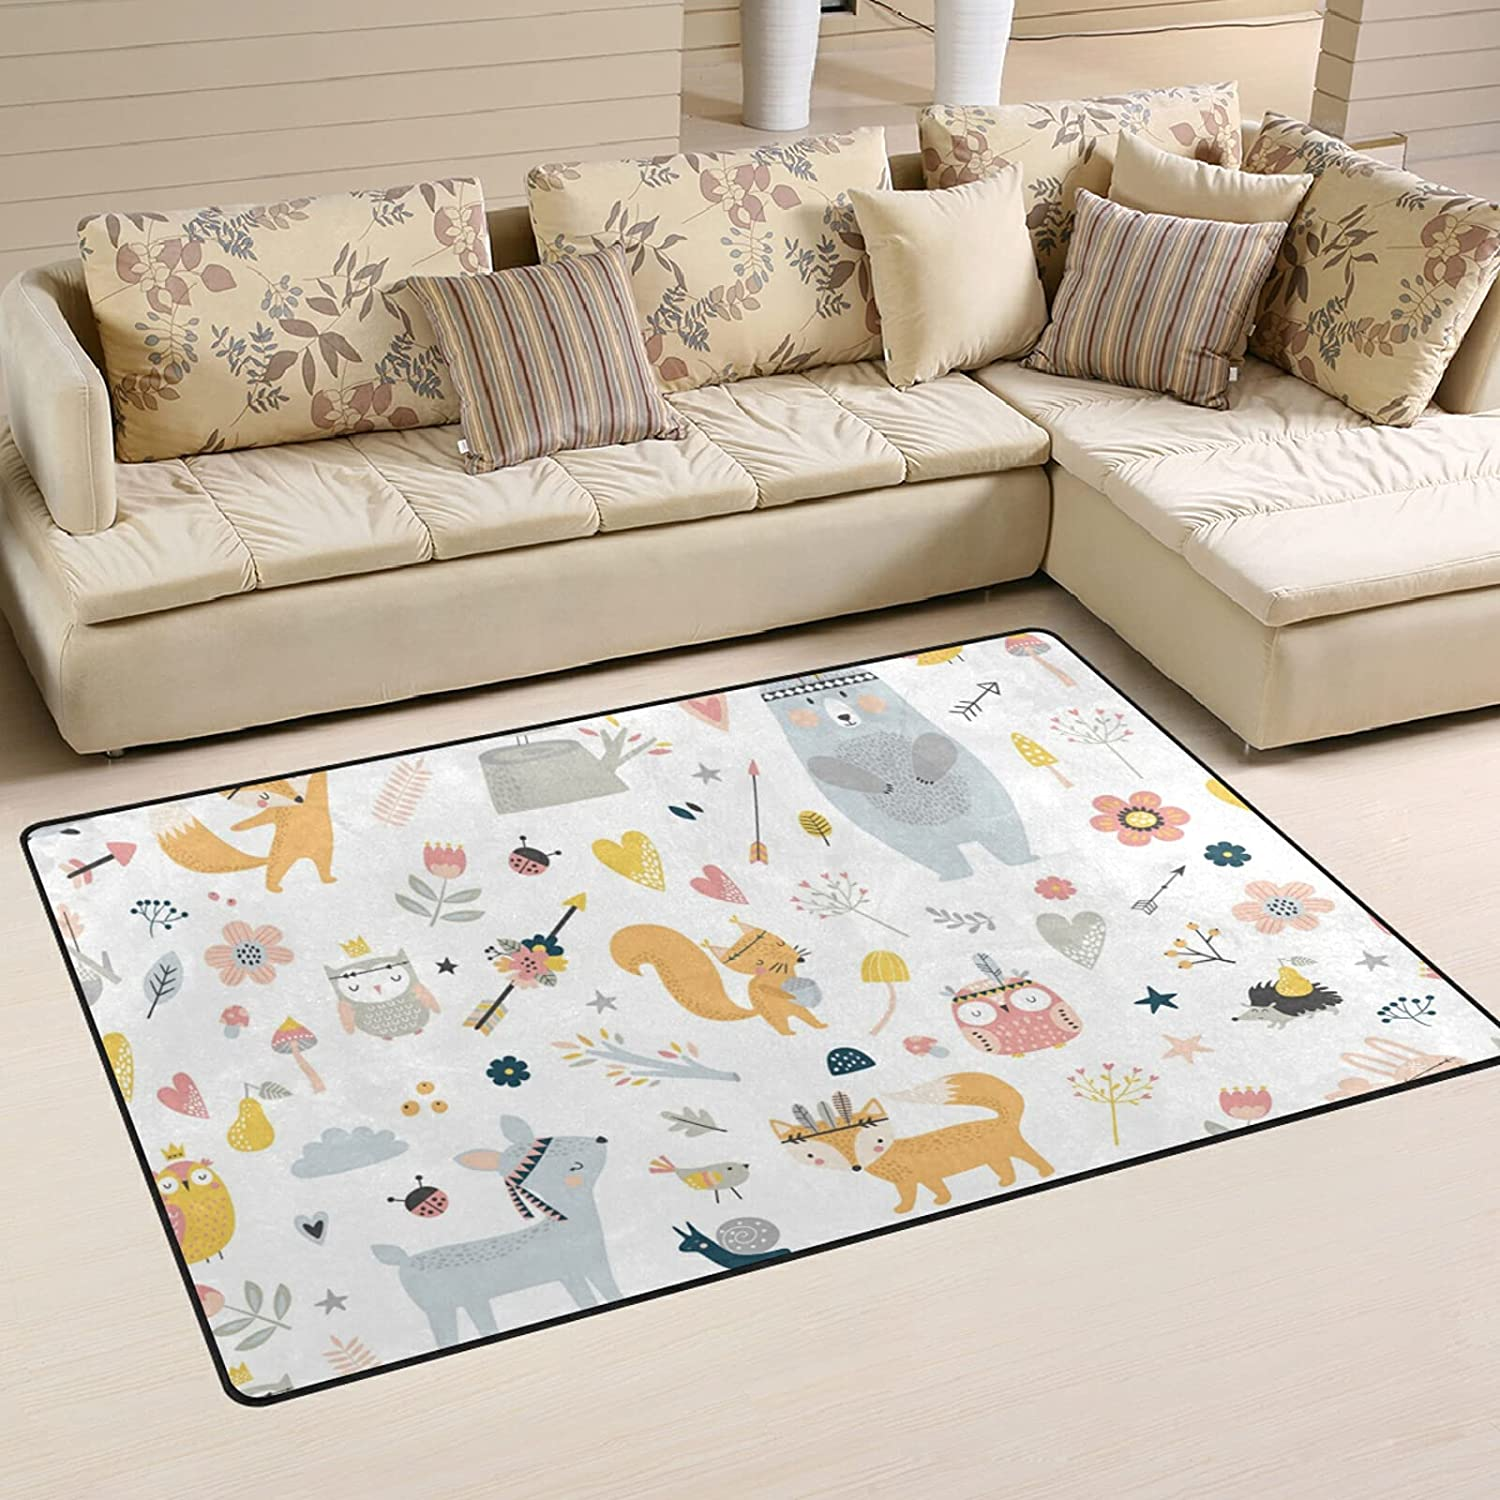 Forest Cute Animals 70% OFF Outlet Large Soft Area Mat Playmat Product Rug Nursery Rugs